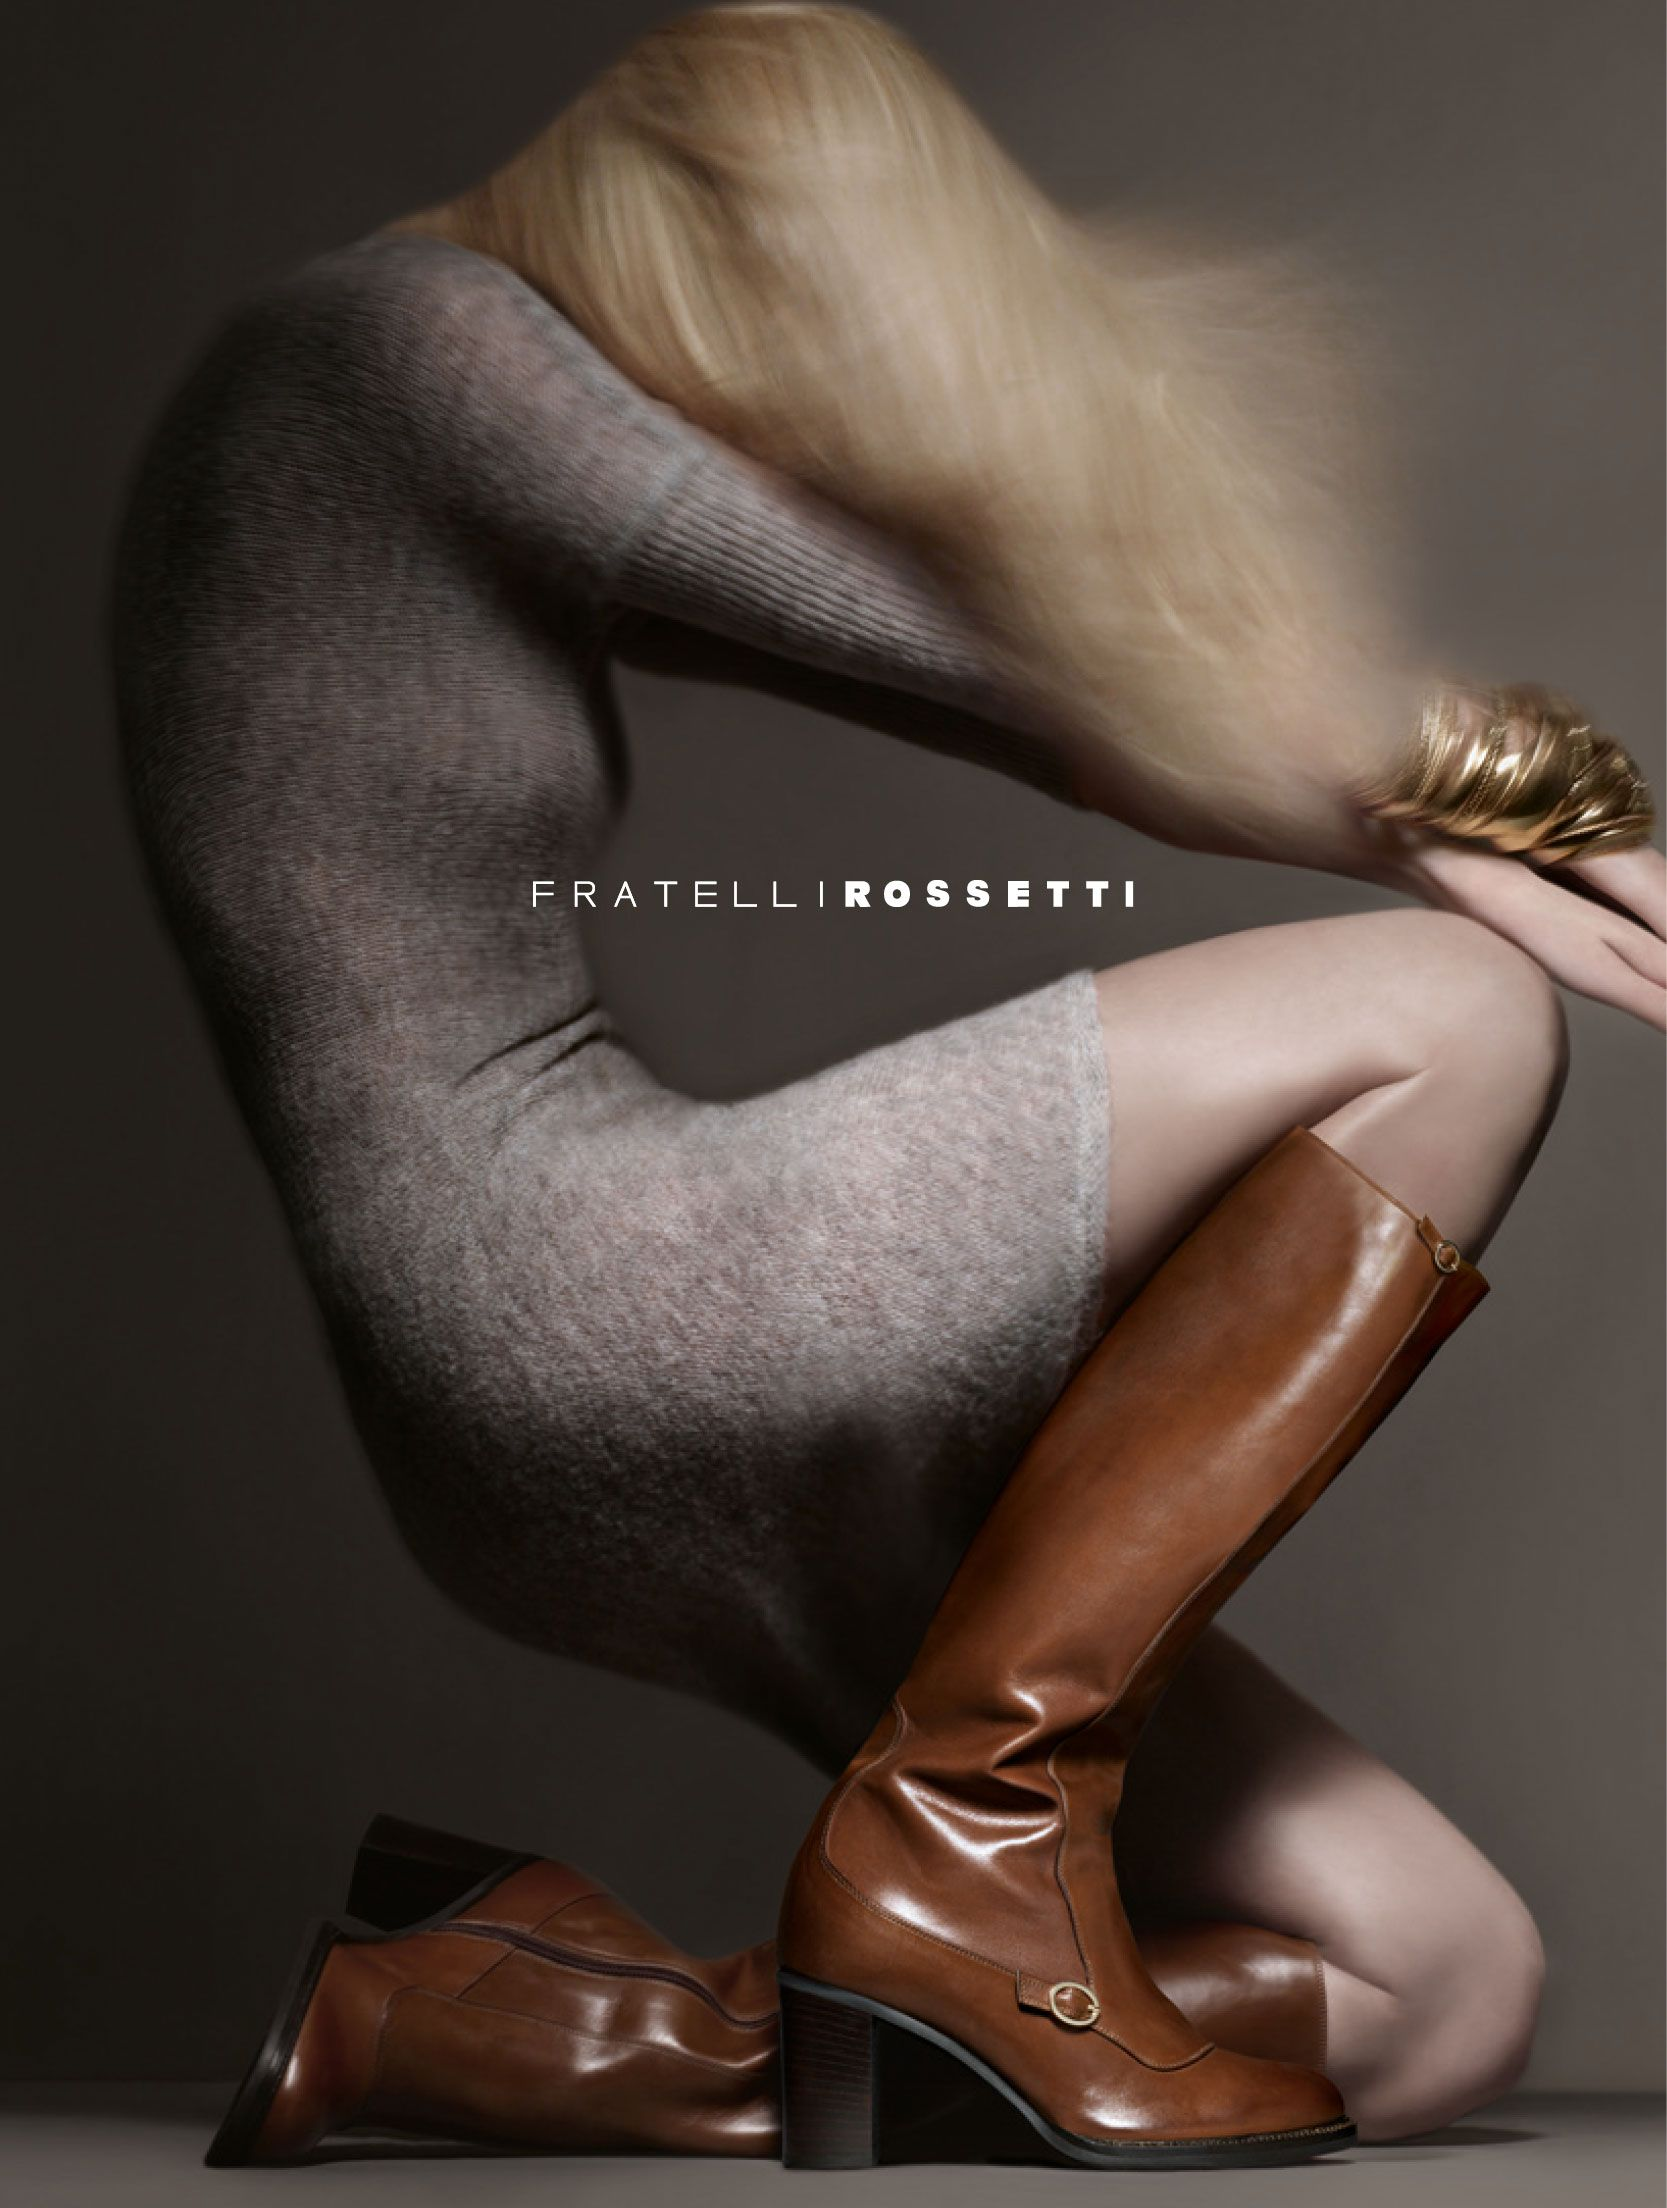 Studio Falavigna / Ciro Falavigna / FRATELLI ROSSETTI // Advertising Fall Winter 2009/10